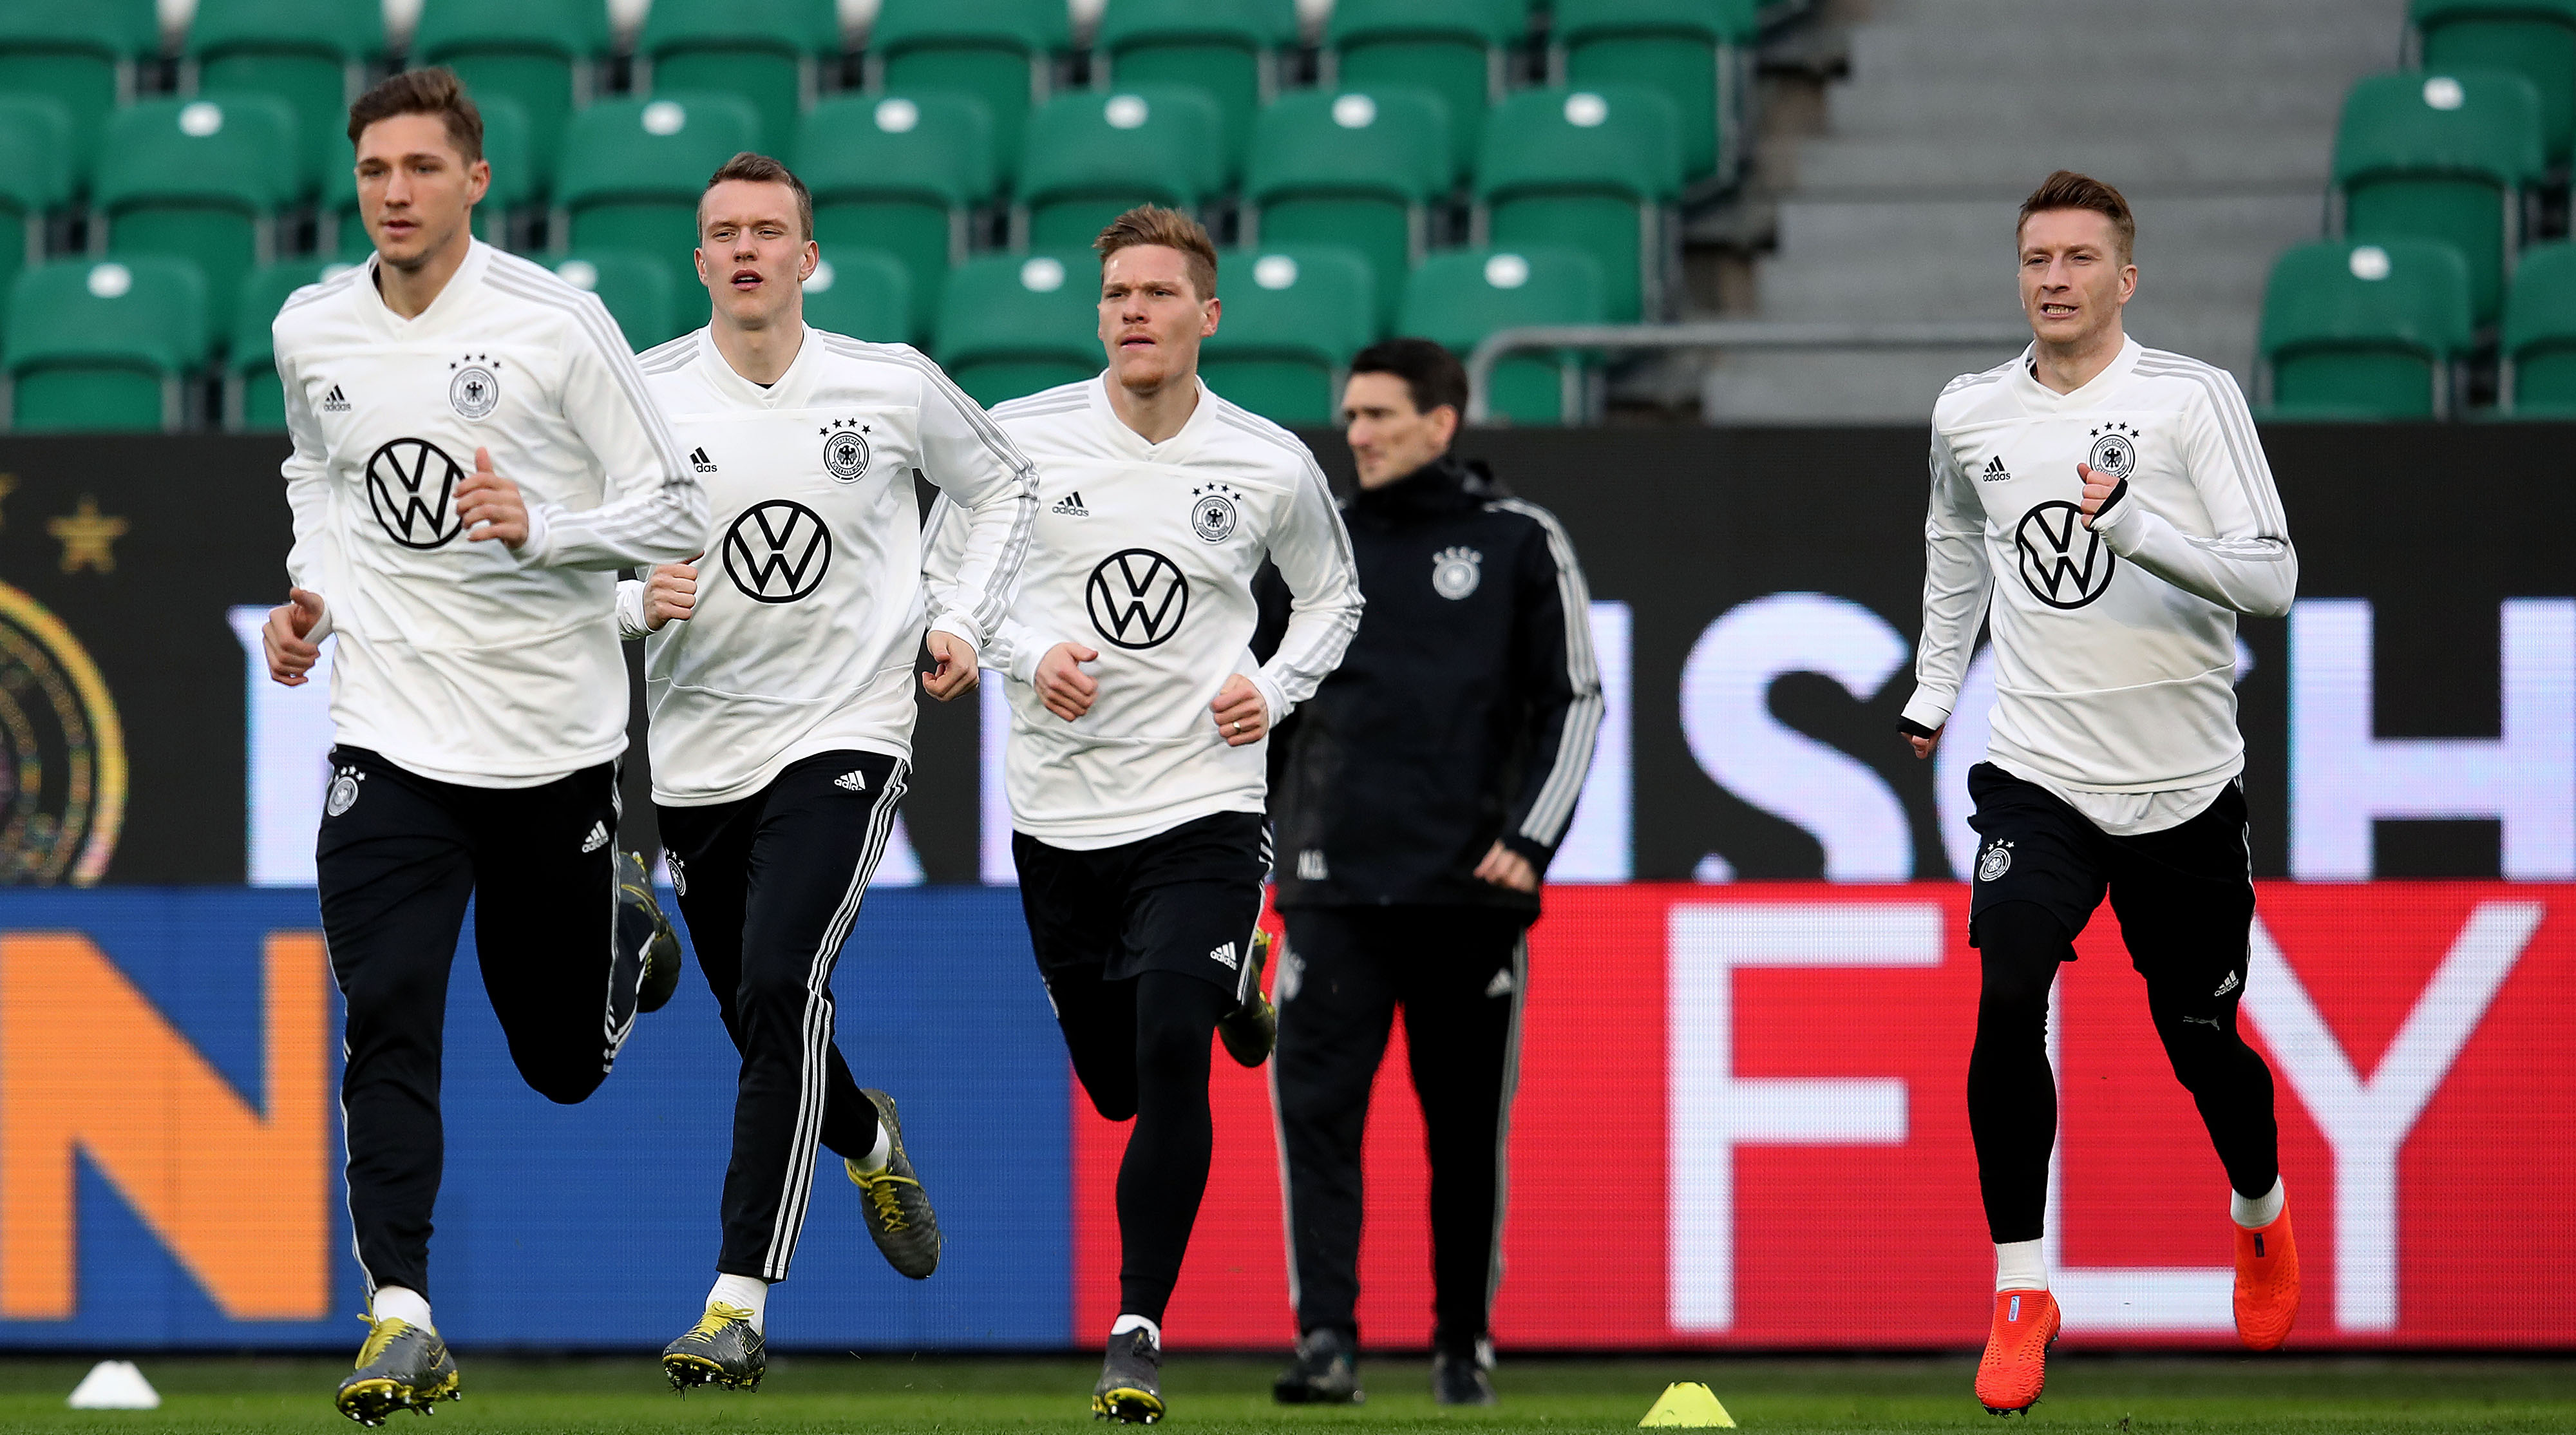 How to watch Germany vs Serbia